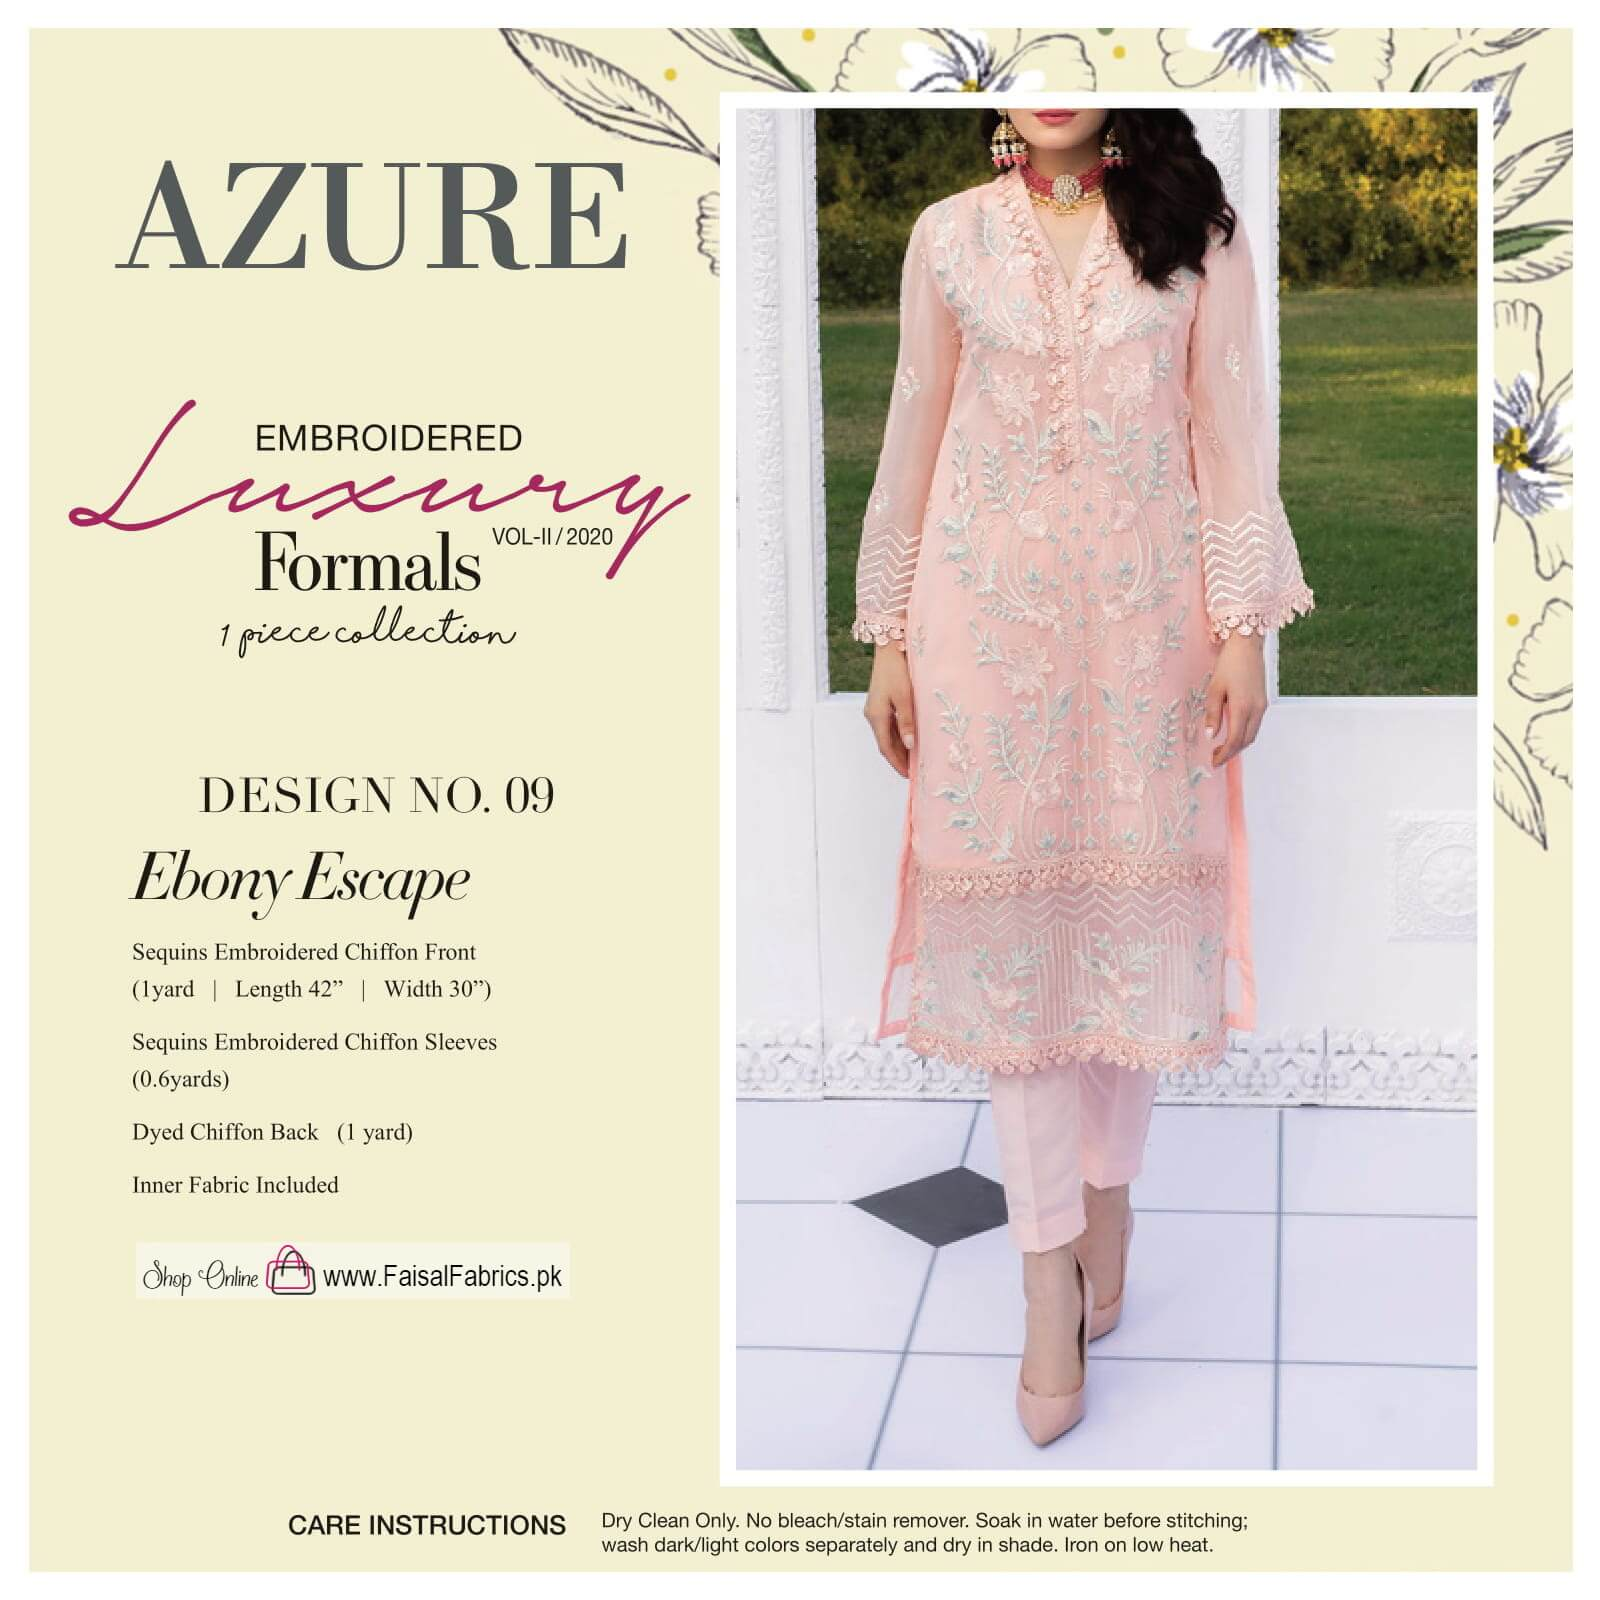 AZURE Luxury Formals VOL-2 Embroidered Chiffon Kurti AZ-09 Ebony Escape - FaisalFabrics.pk